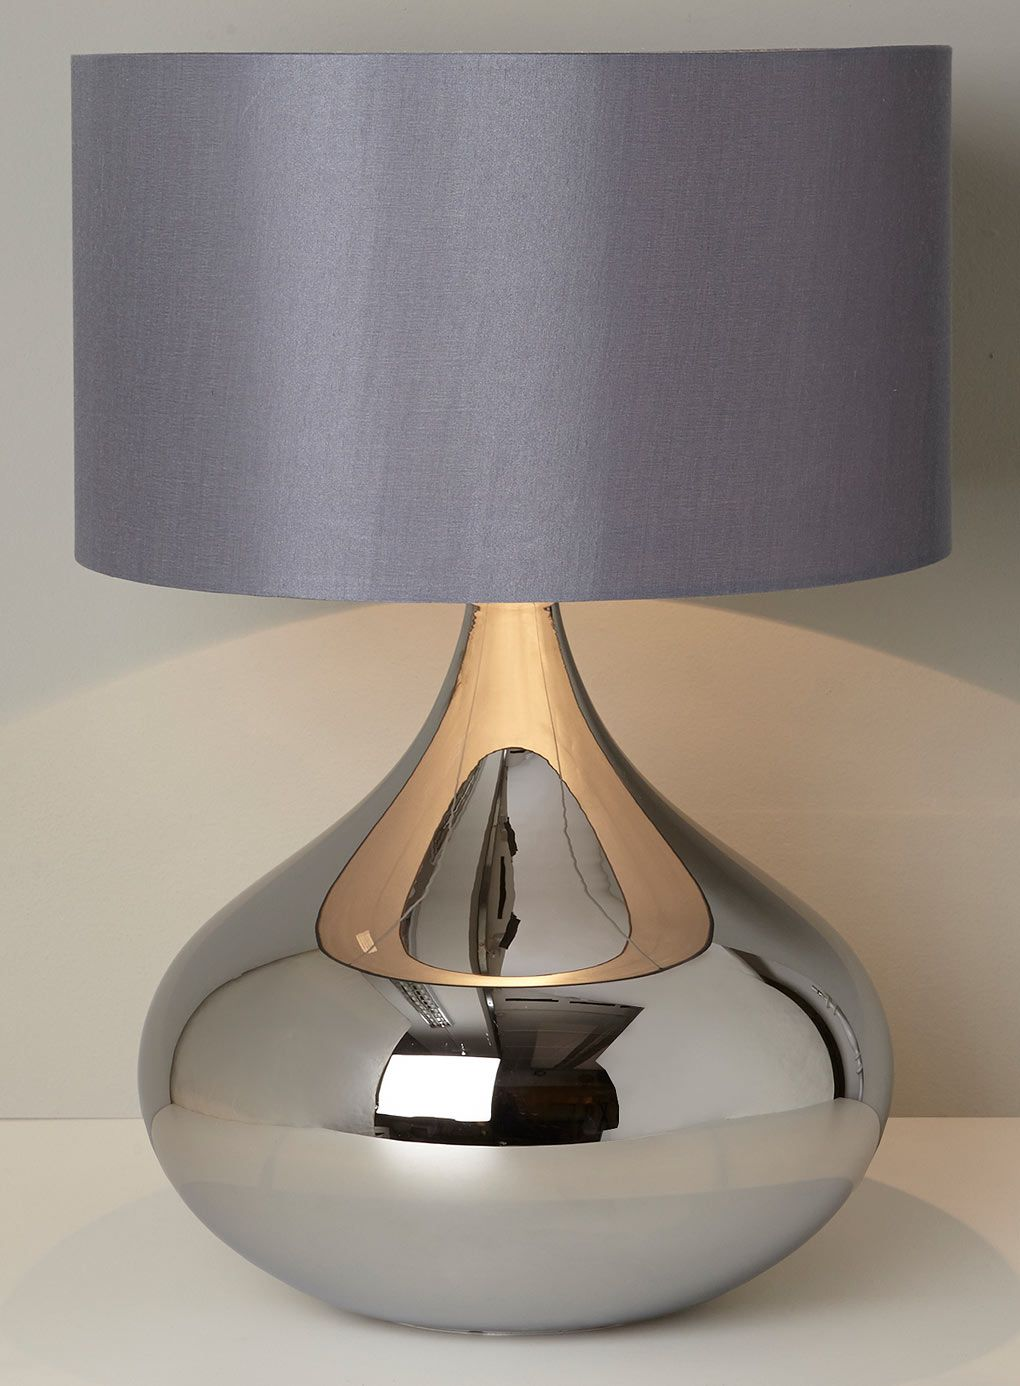 New lily round table lamp ac grey and plum living room long new lily round table lamp geotapseo Images